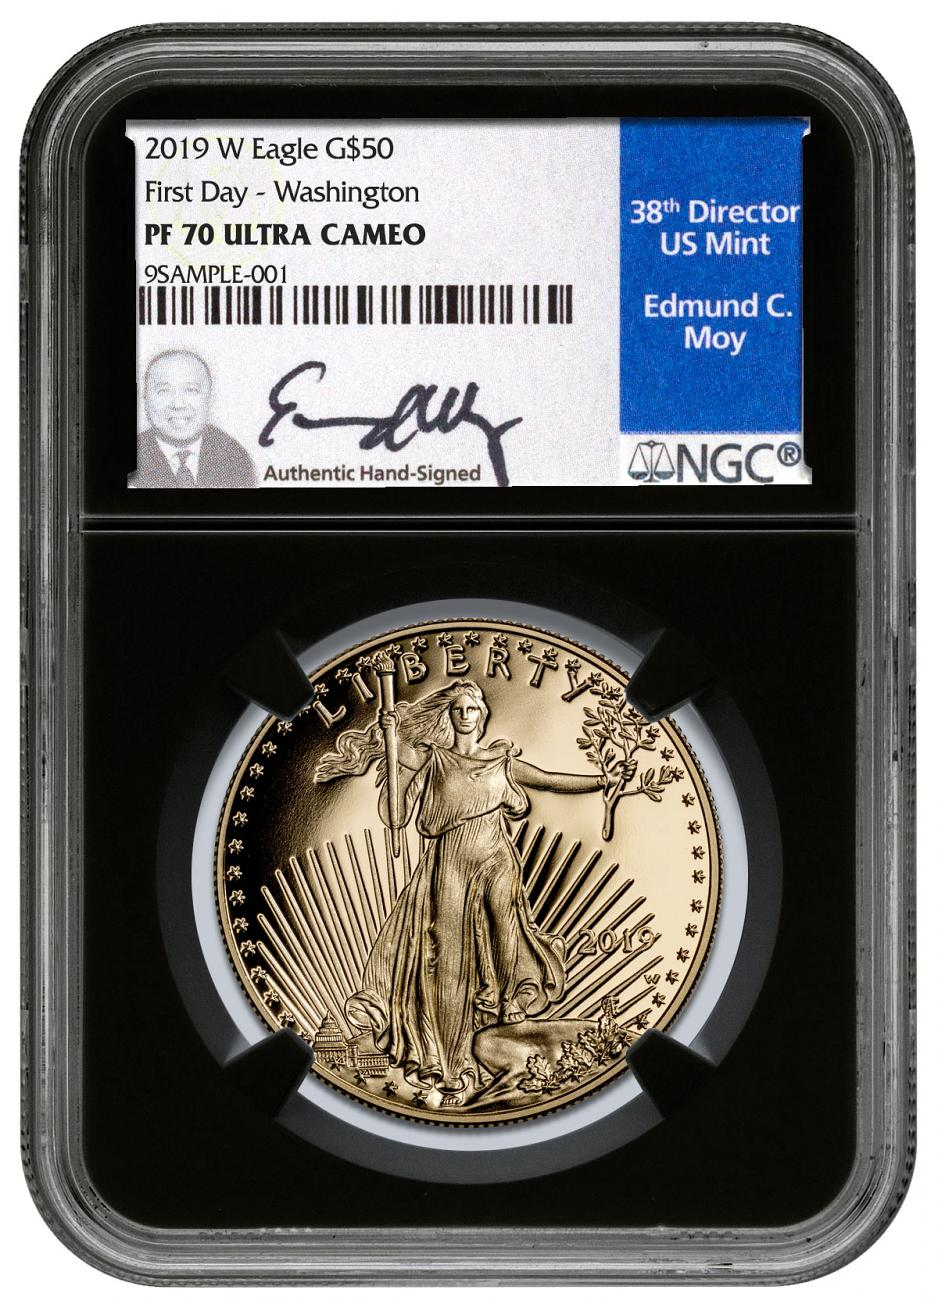 2019-W 1 oz Gold American Eagle Proof $50 Scarce and Unique Coin Division NGC PF70 First Day of Issue - Washington, D.C. Black Core Holder Moy Signed Label